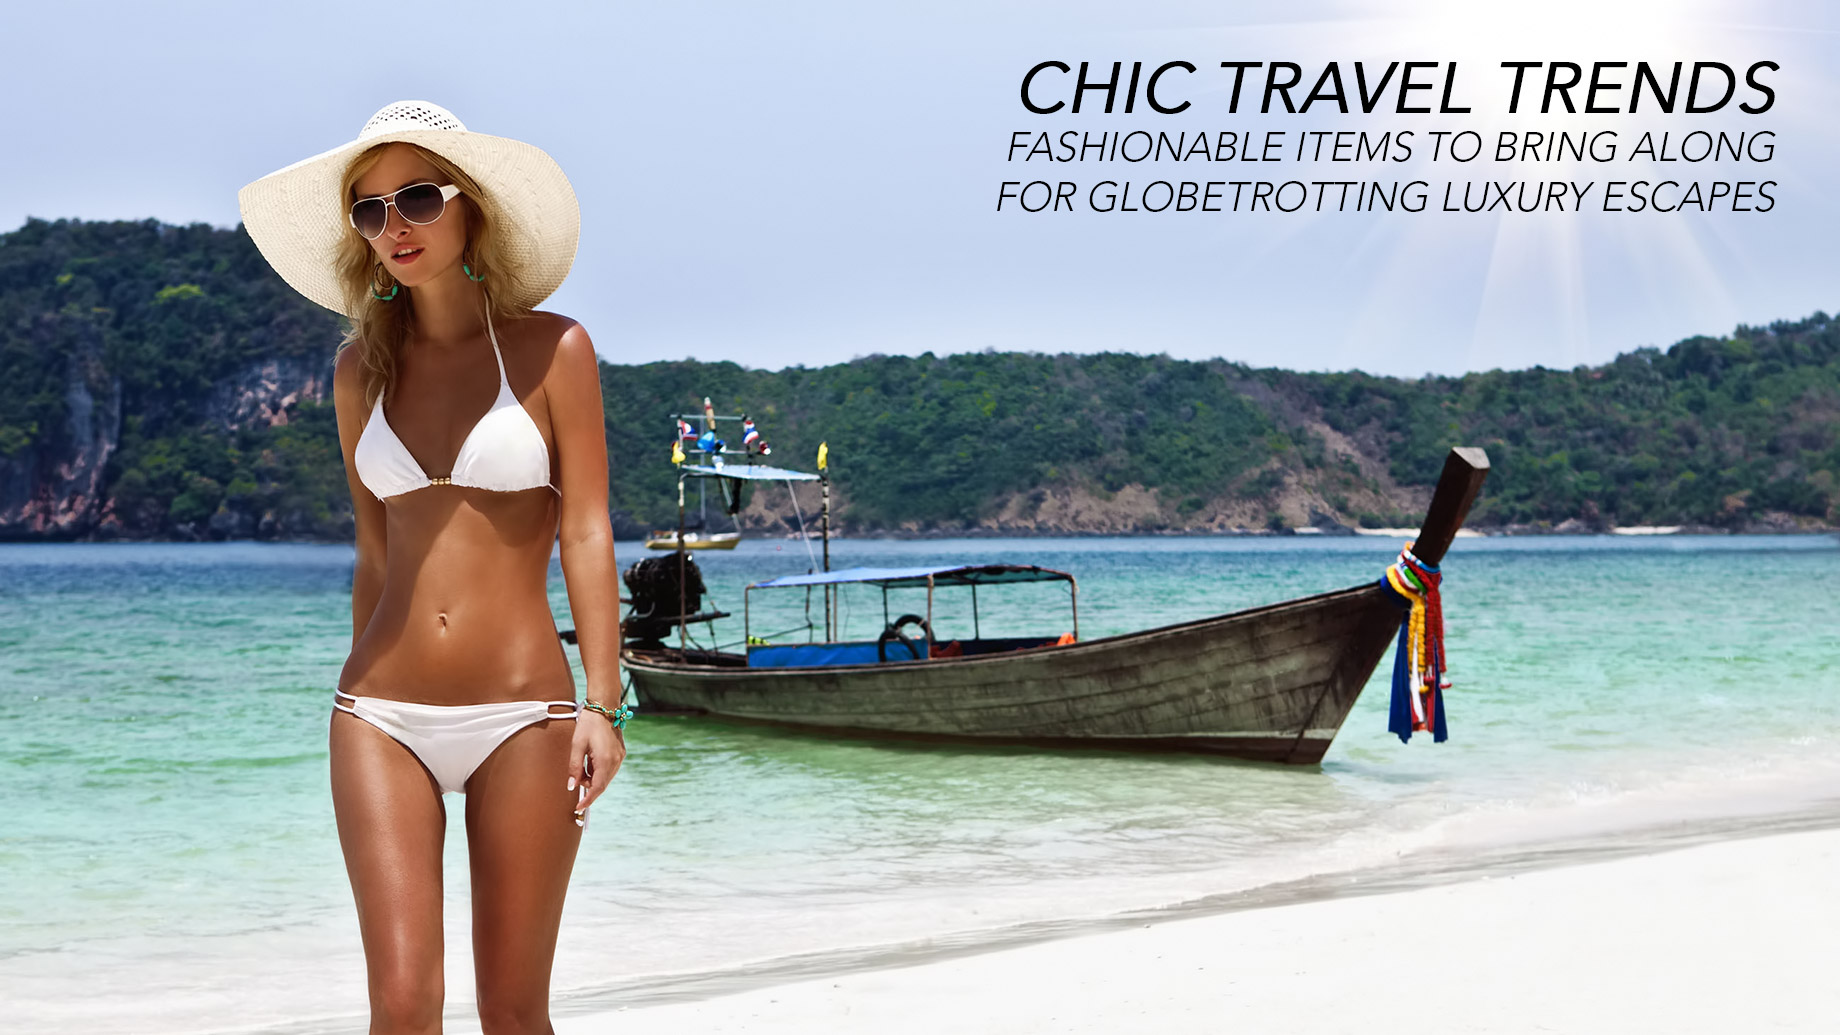 Chic Travel Trends - Fashionable Items to Bring Along for Globetrotting Luxury Escapes